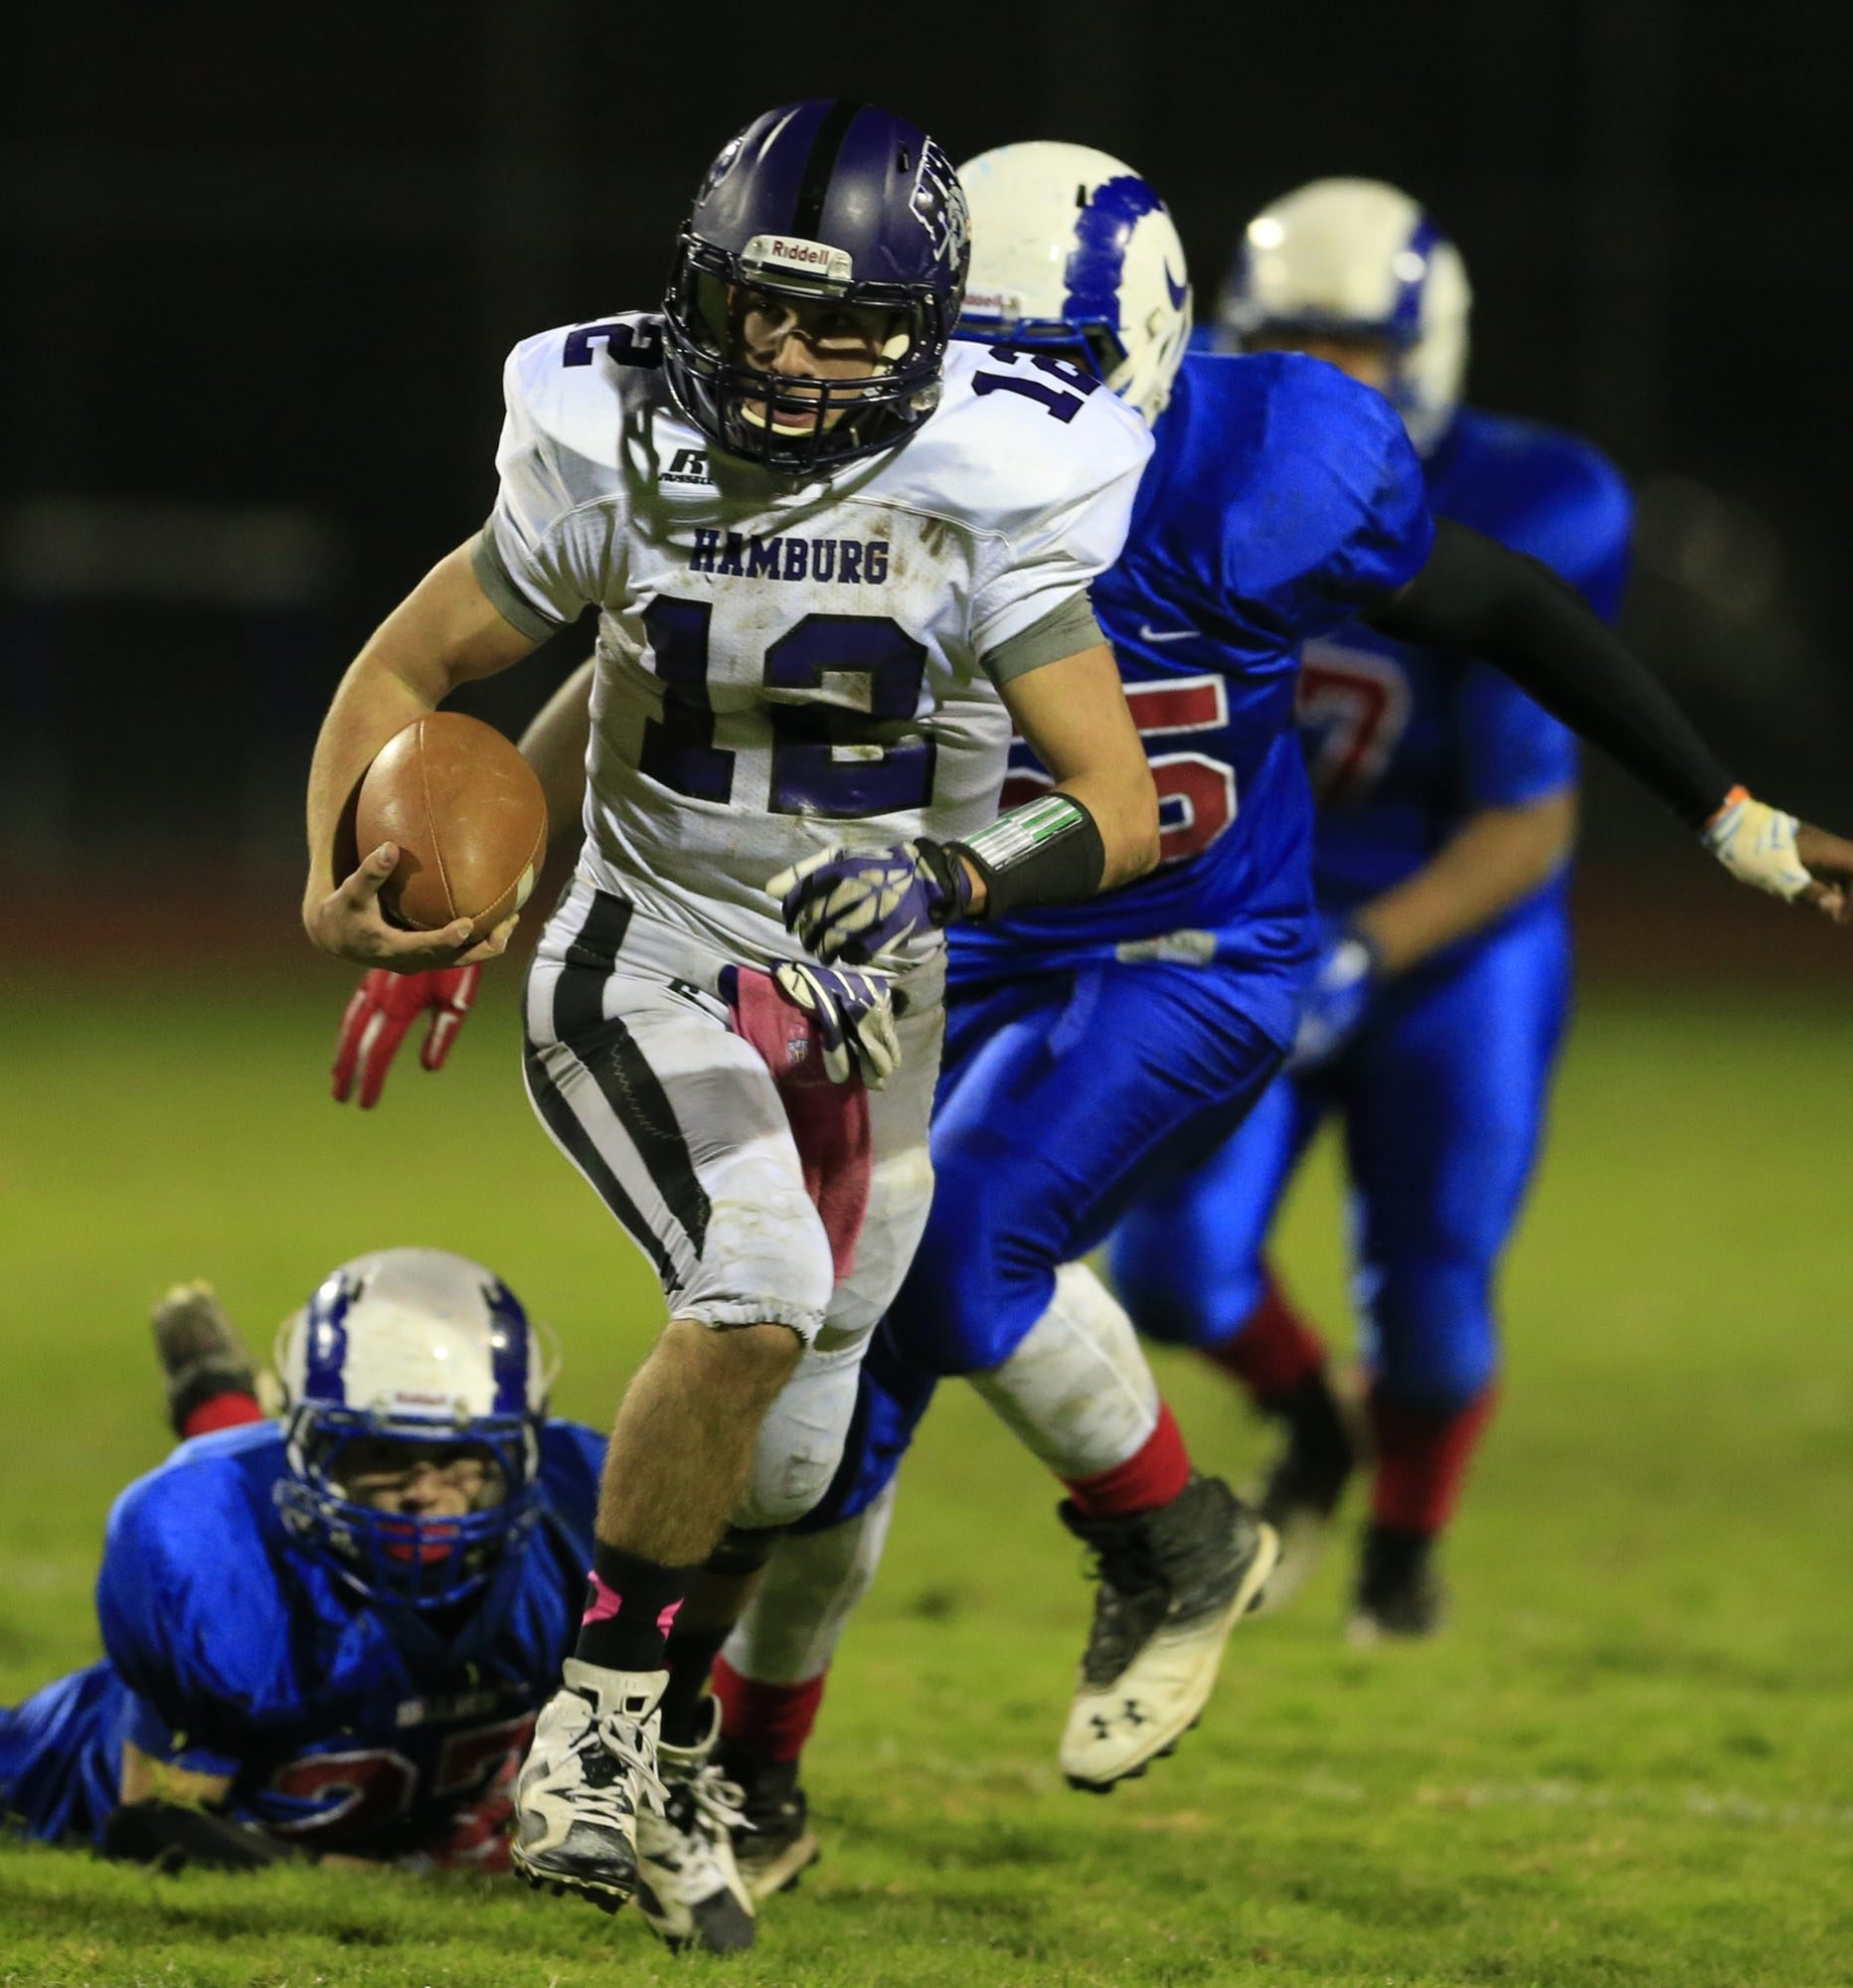 Hamburg quarterback Alex Suchan helped the Bulldogs rally to knock off host Williamsville South in overtime.